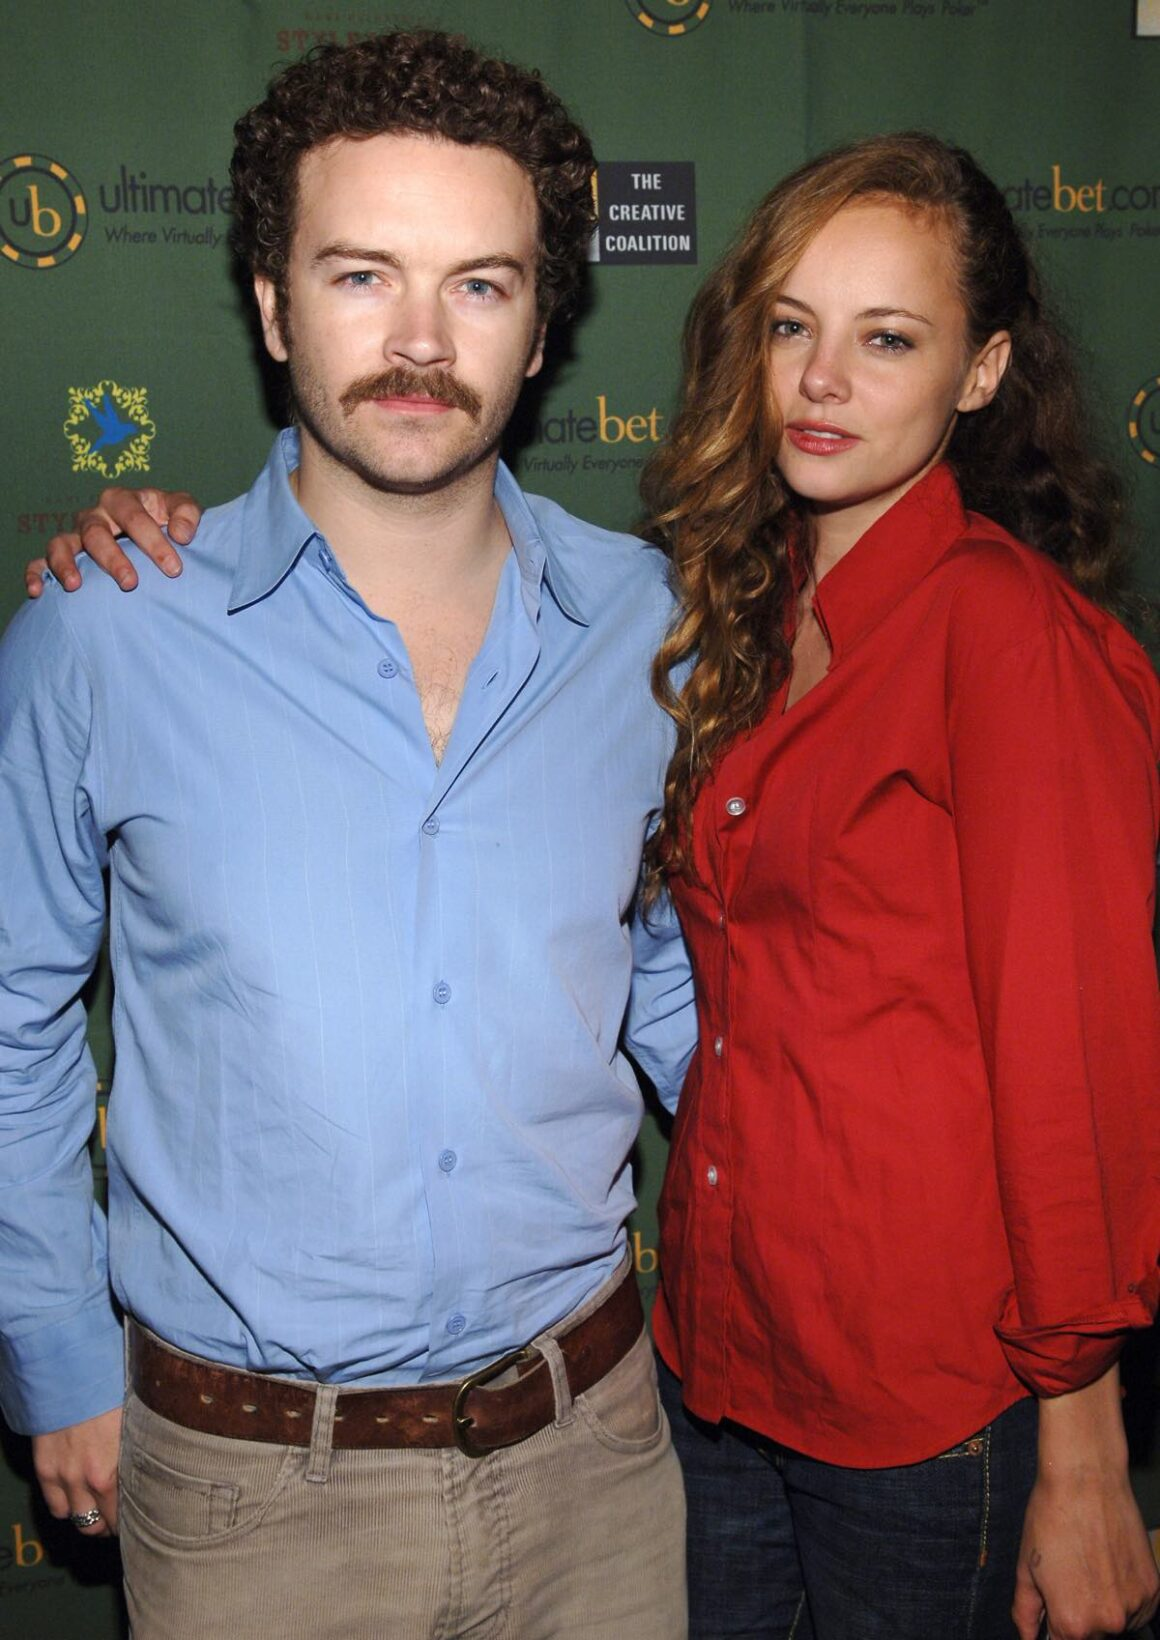 Danny Masterson Ultimatebet.com, Kari Feinstein and Mike McGuiness Host Celebrity Poker Tournament to Honor Clifton Collins Jr's Emmy Nomination